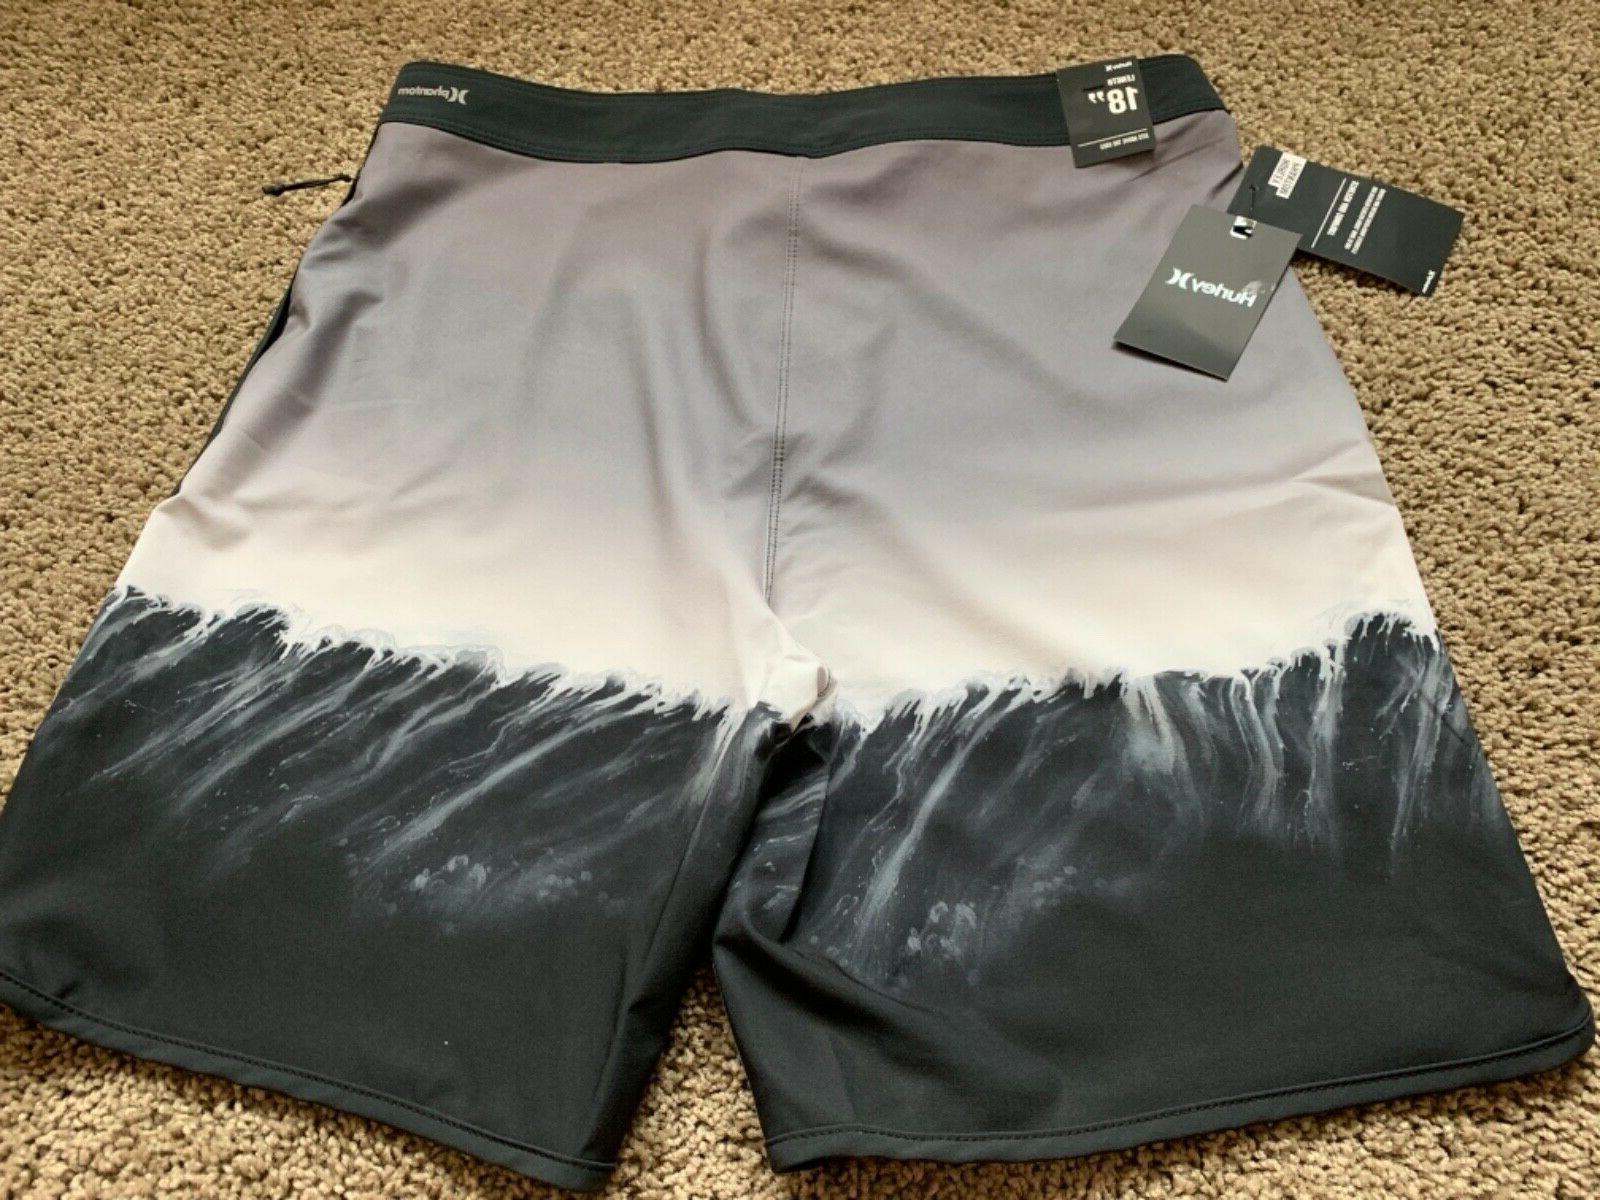 $65 HURLEY PHANTOM MENS SHORTS 34 36 x 18